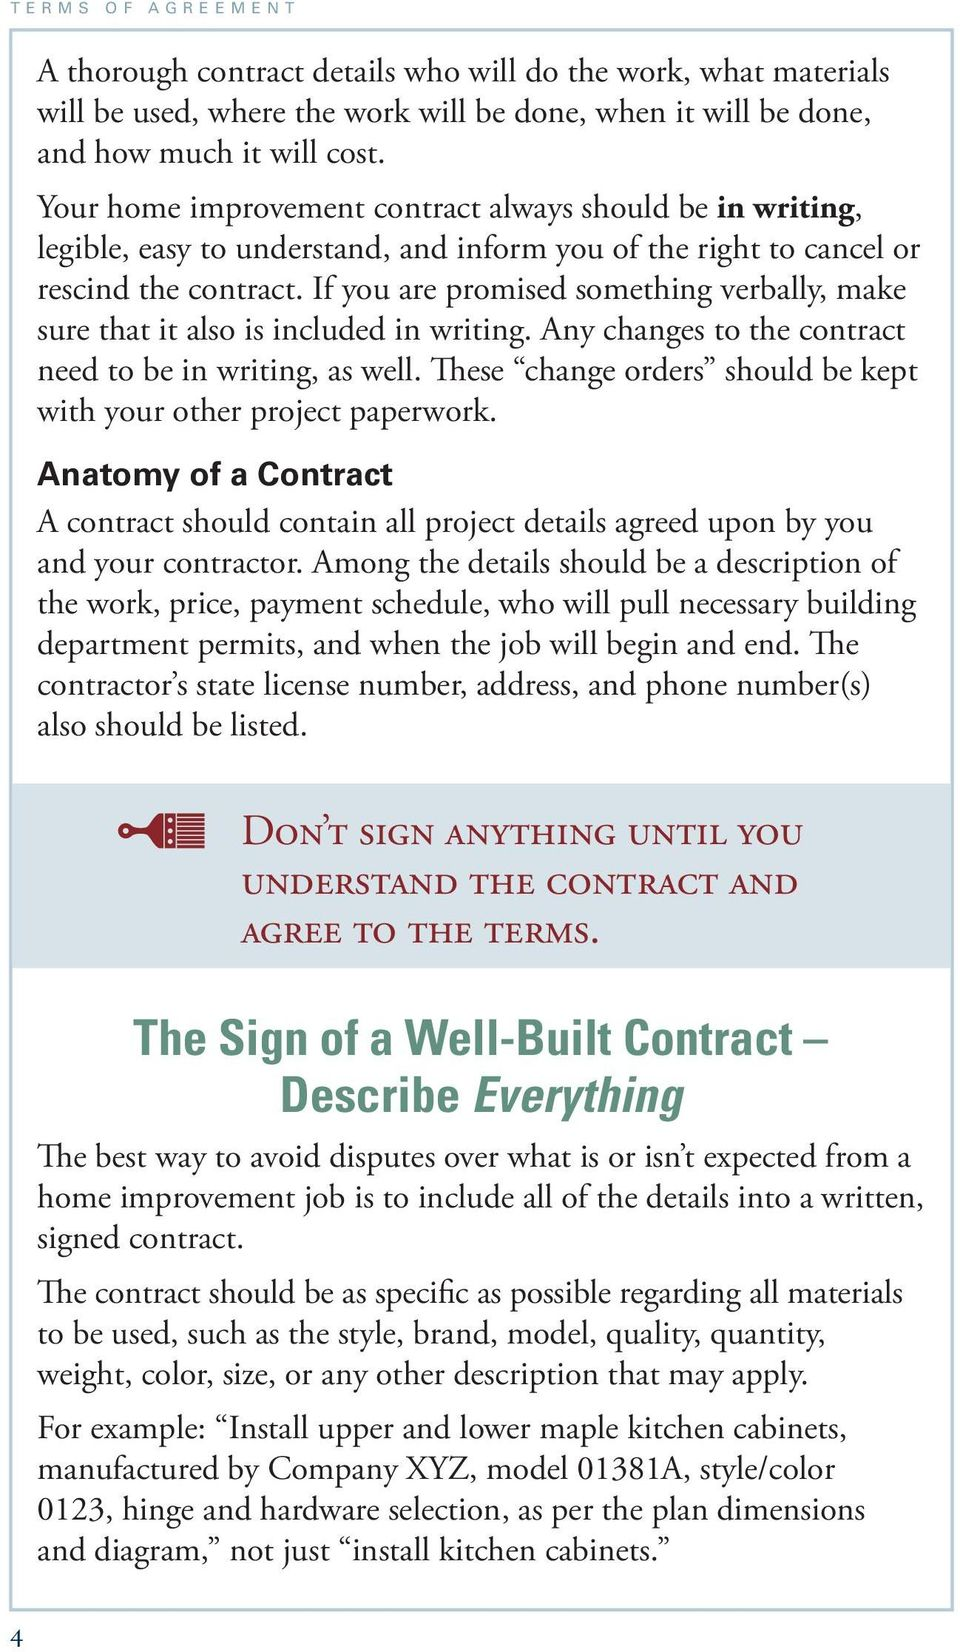 Terms of Agreement. A Consumer Guide to Home Improvement Contracts ...